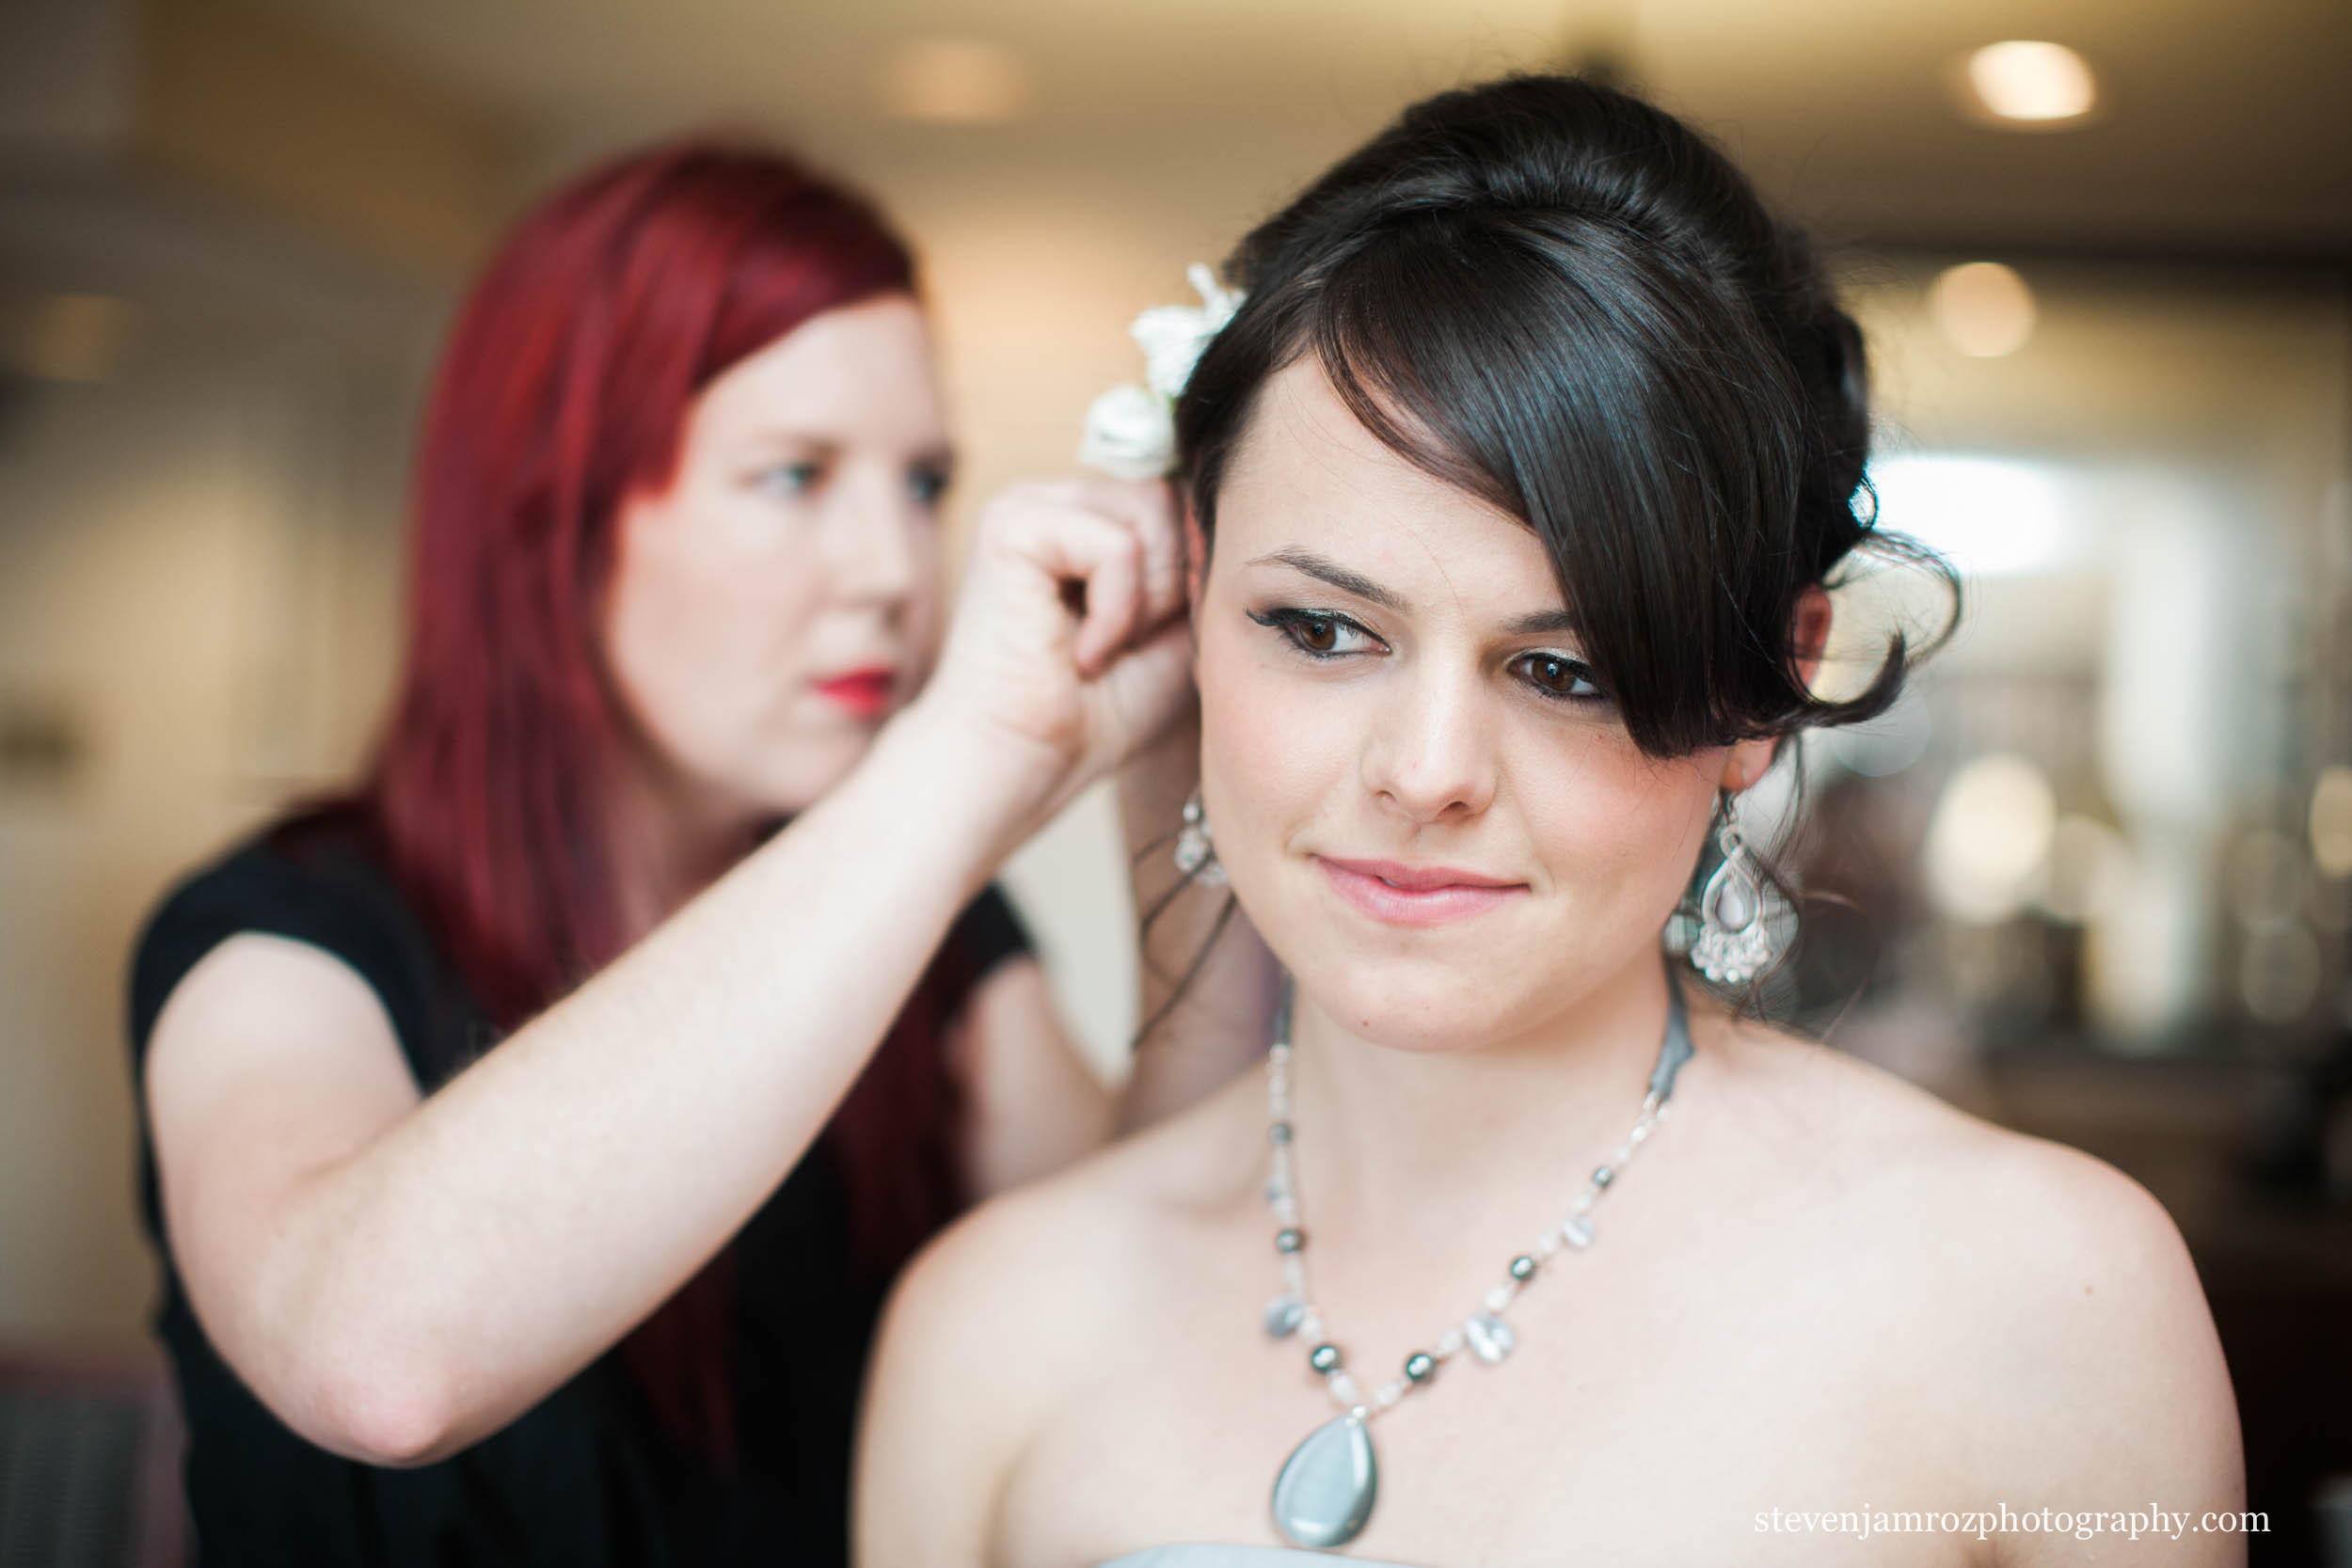 getting-ready-wedding-steven-jamroz-photography-0232.jpg